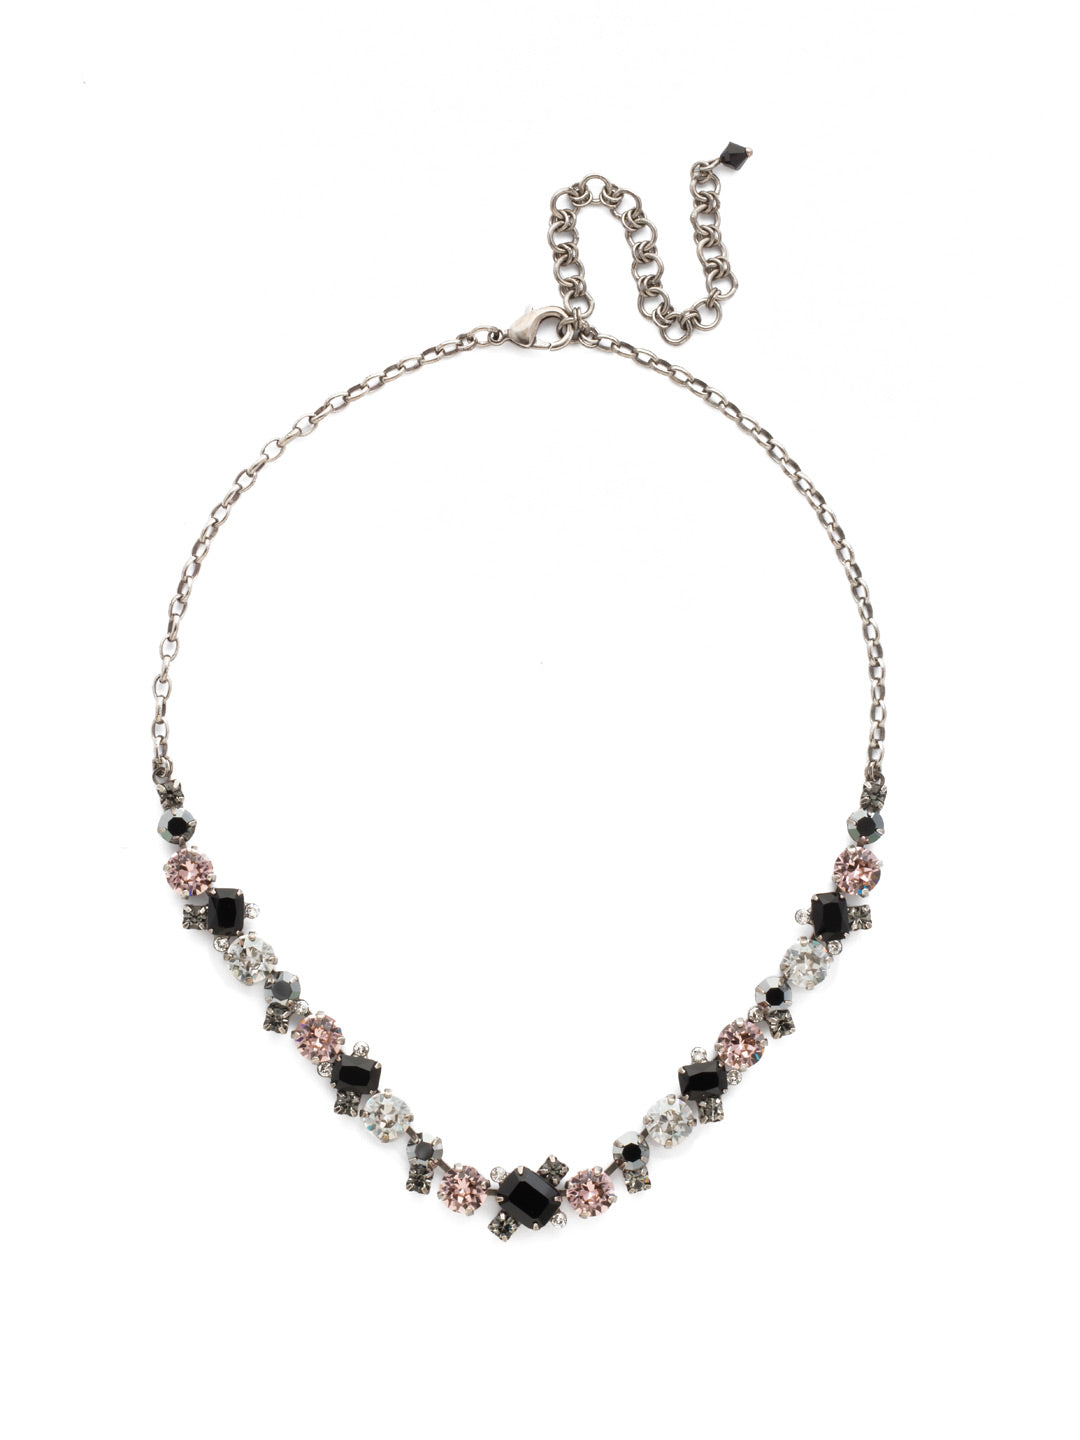 Novelty Multi-Cut Crystal Necklace - NDB78ASCNO